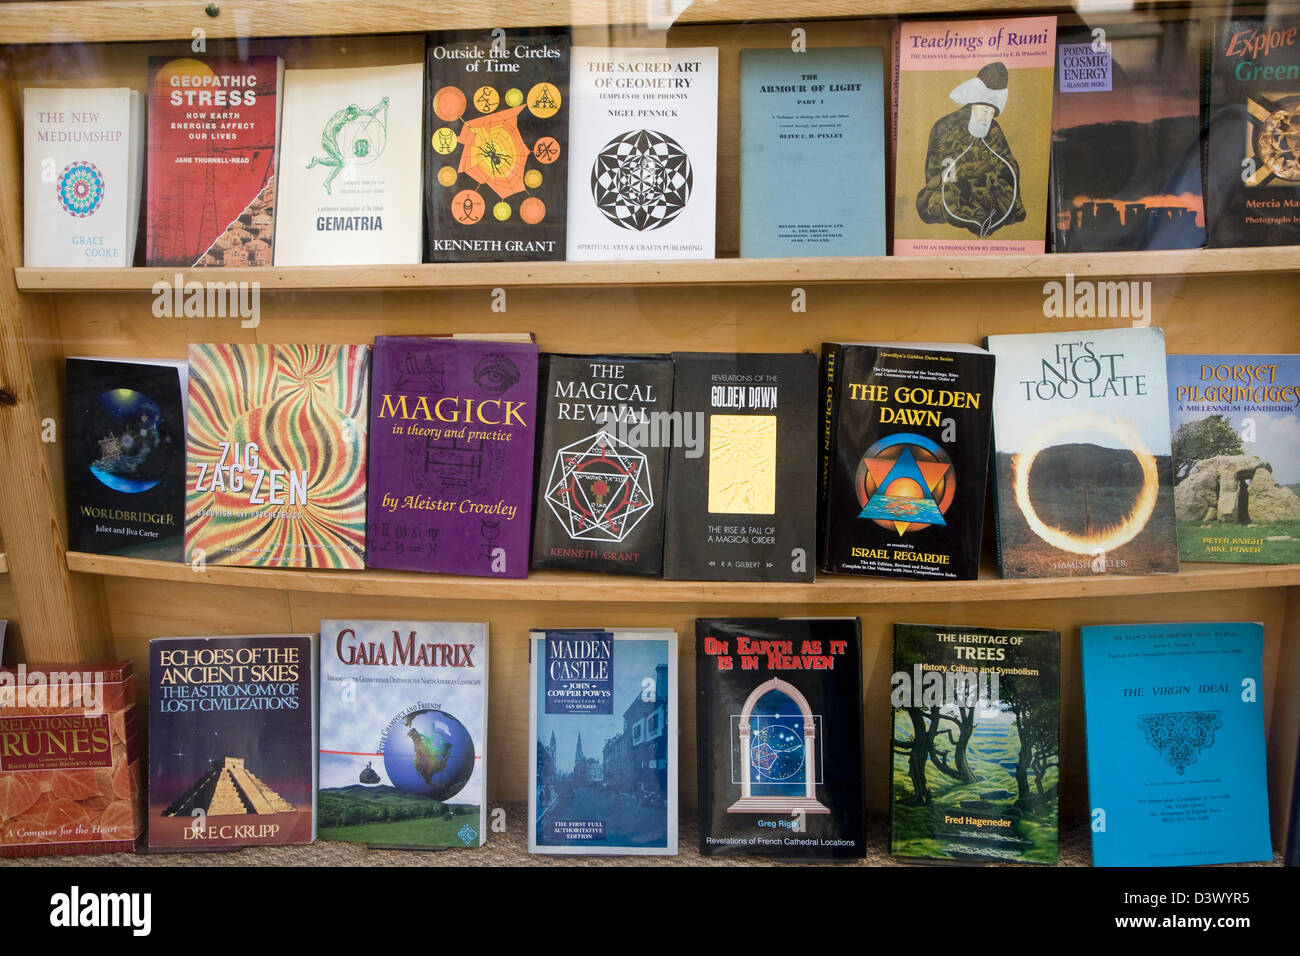 Religious, spiritual, magic books on display in bookshop